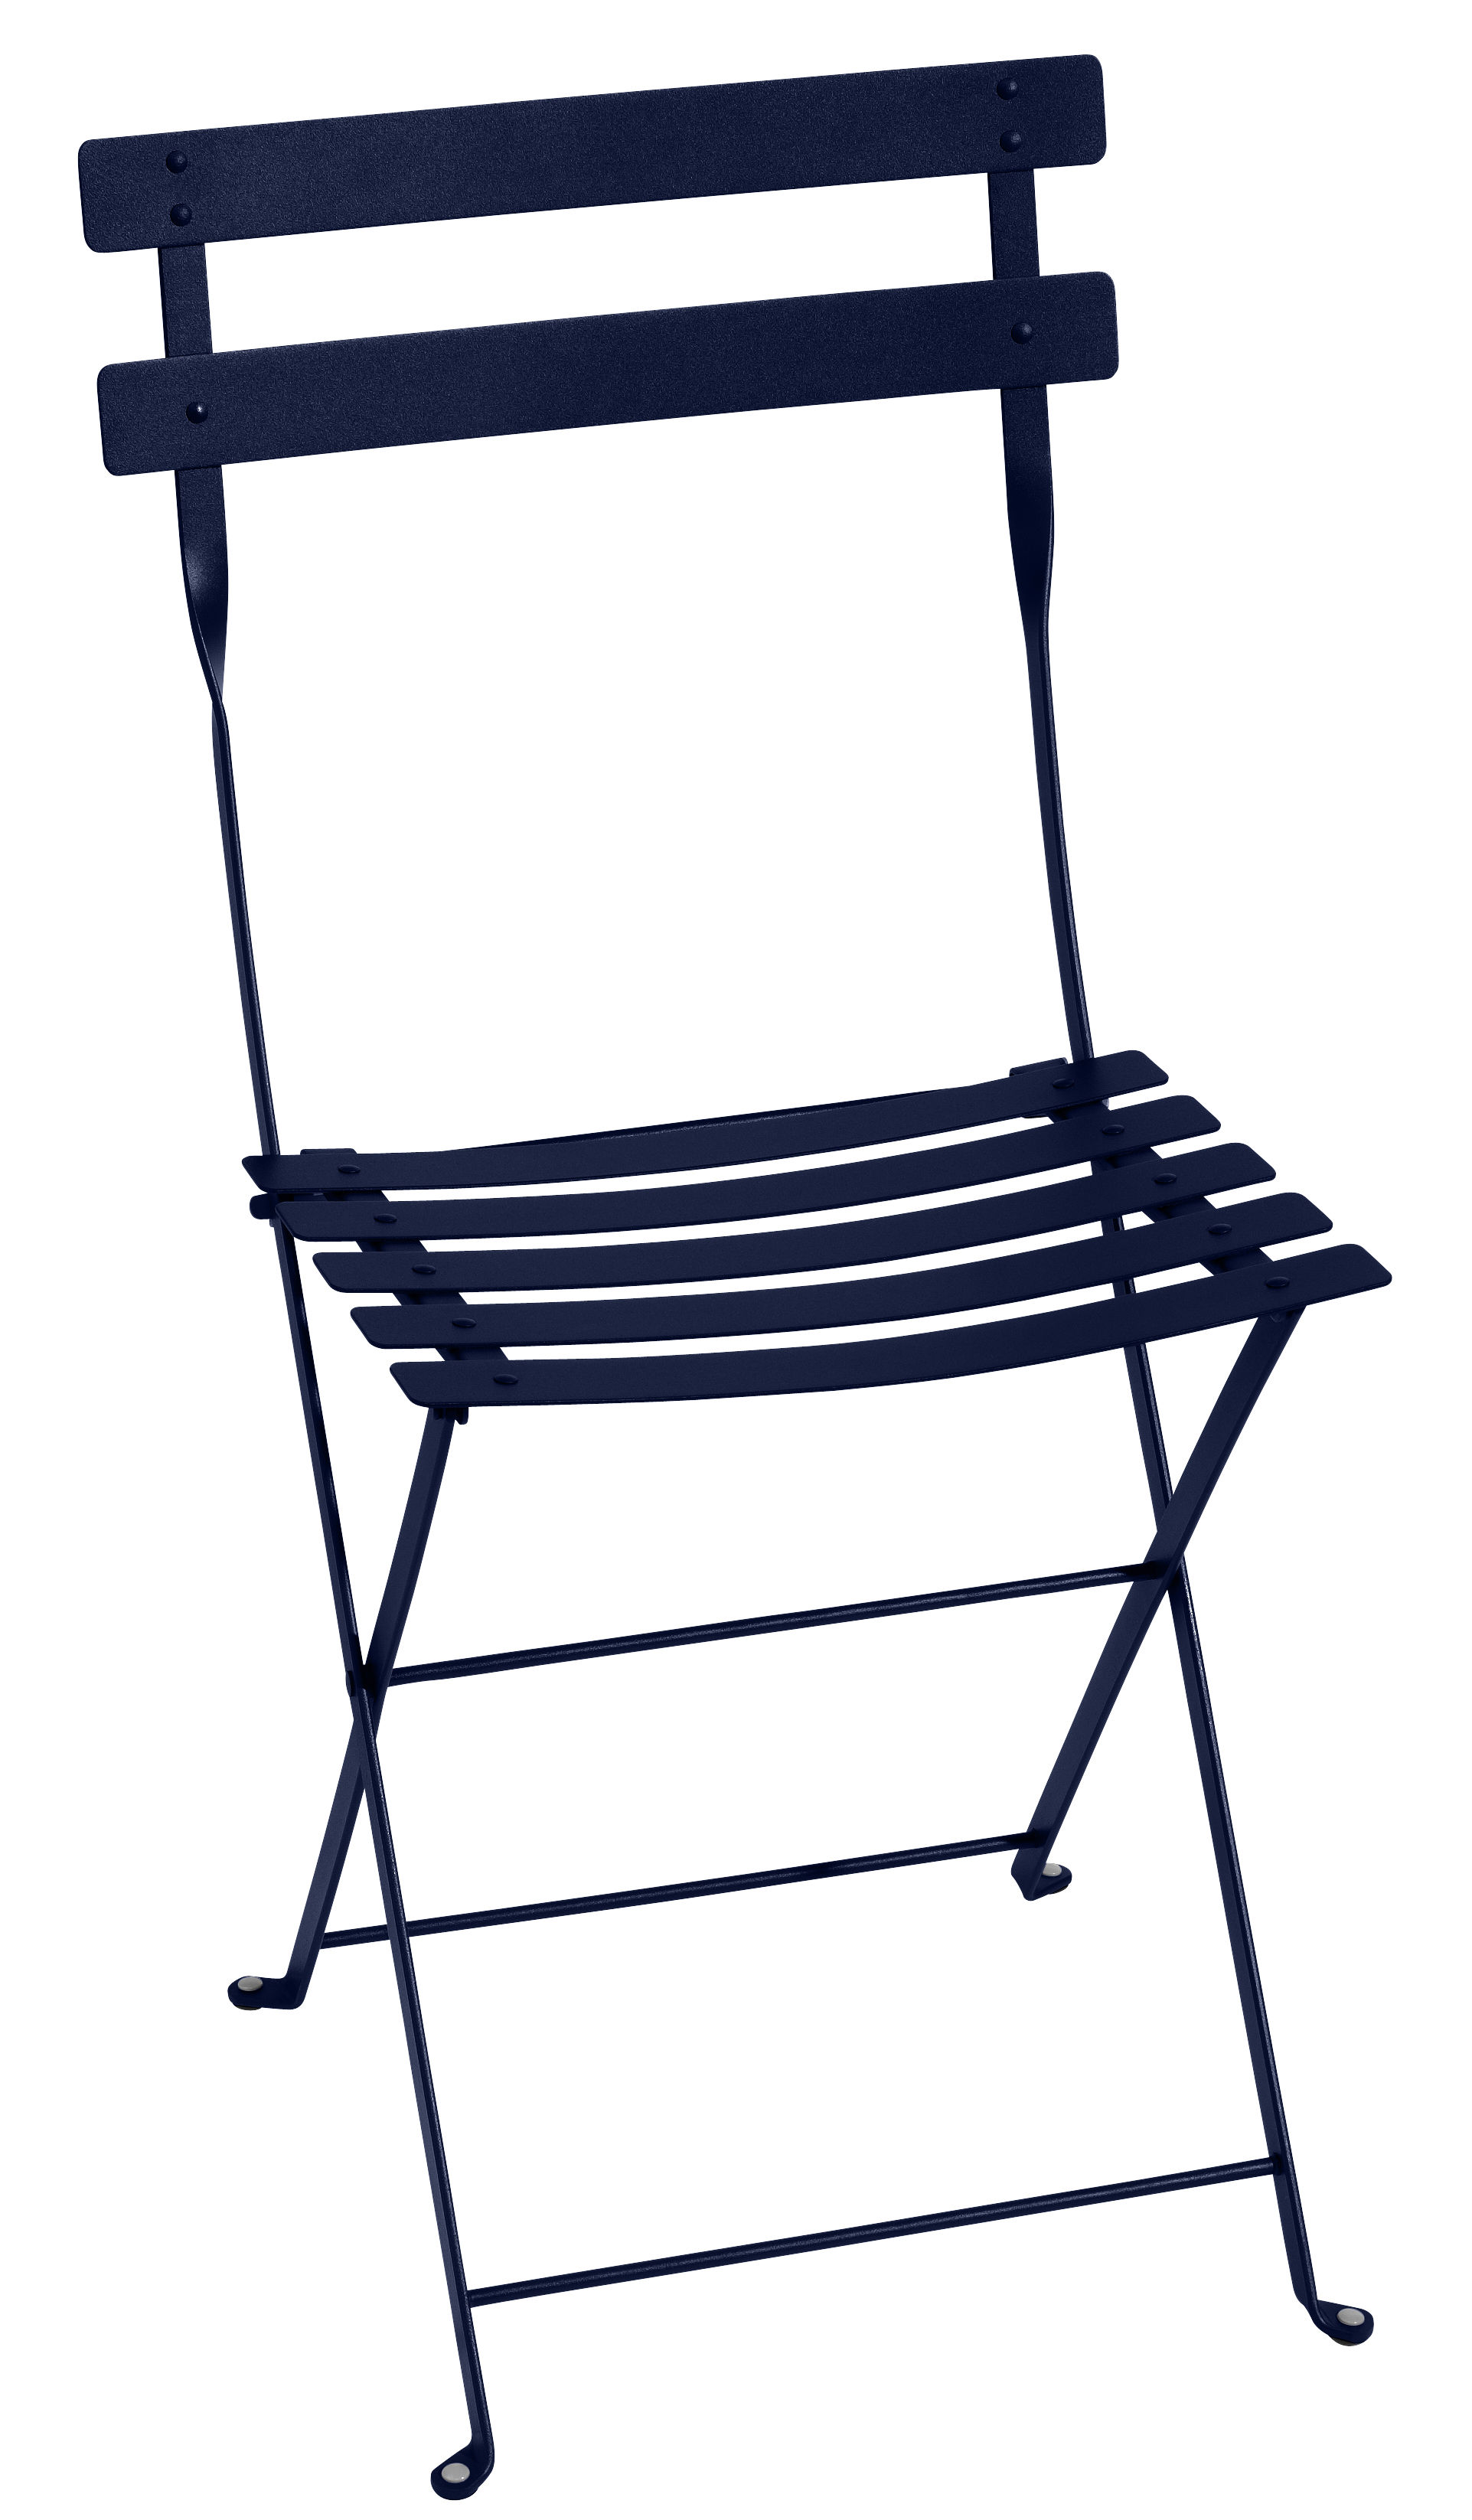 Furniture - Chairs - Bistro Folding chair - / Metal by Fermob - Ocean Blue - Lacquered steel